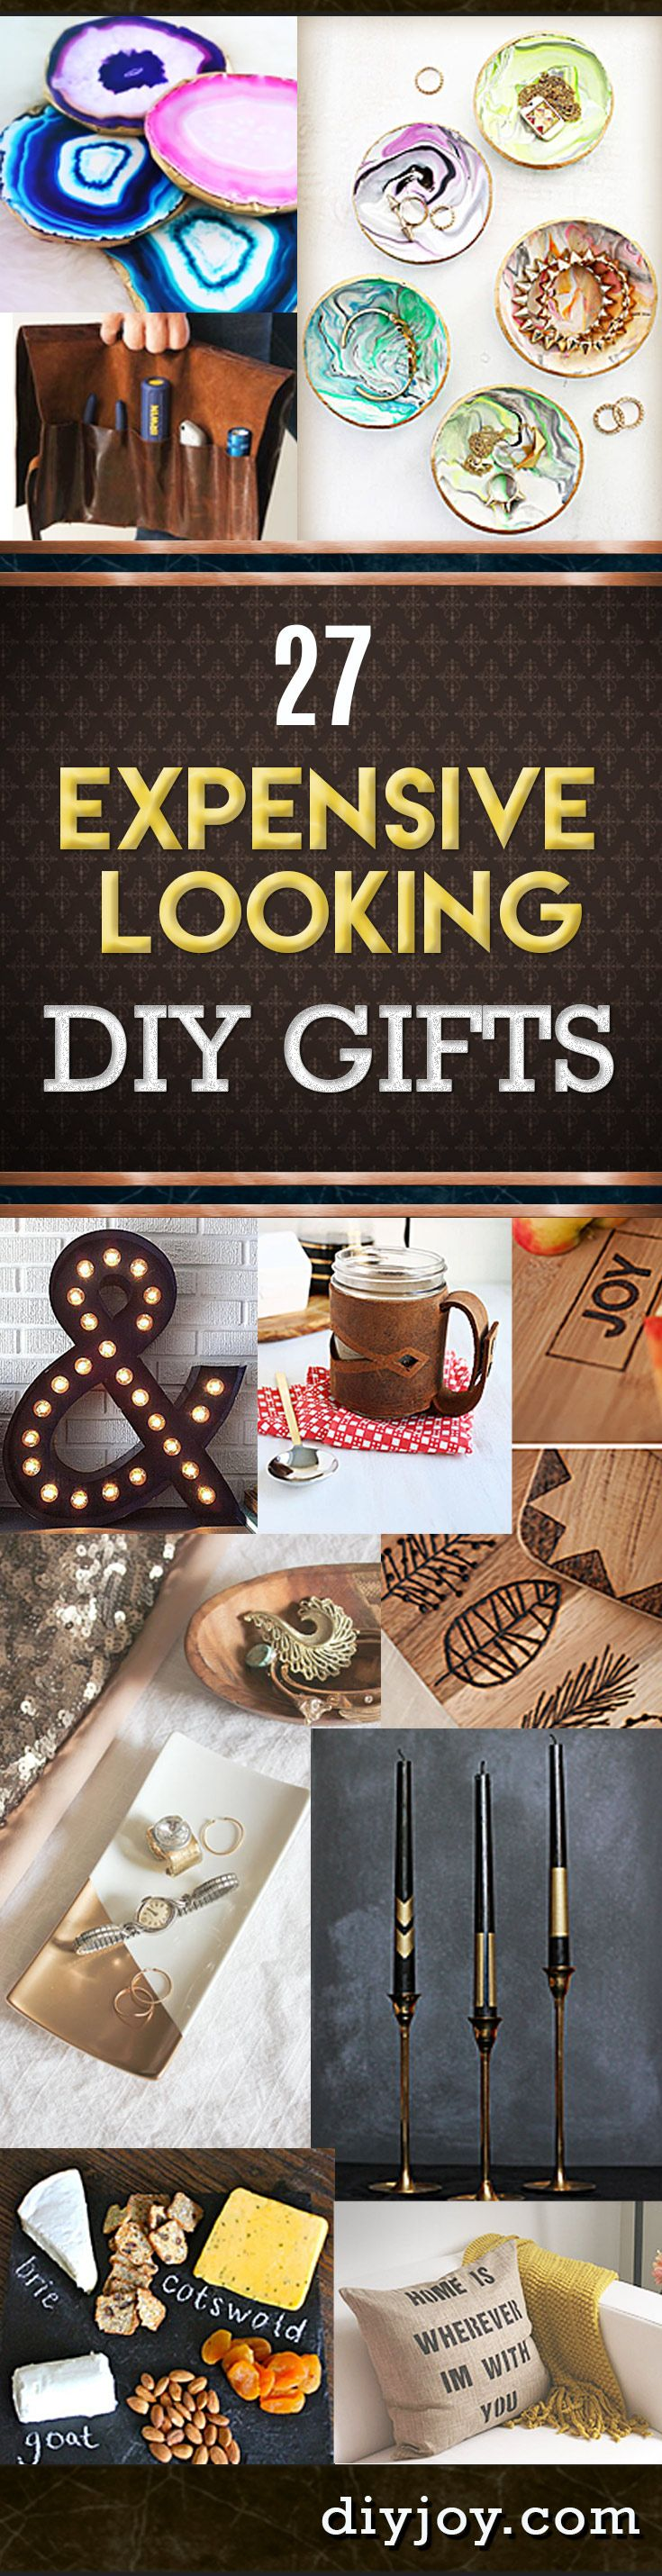 Best 25+ Diy christmas gifts ideas on Pinterest | Diy christmas ...